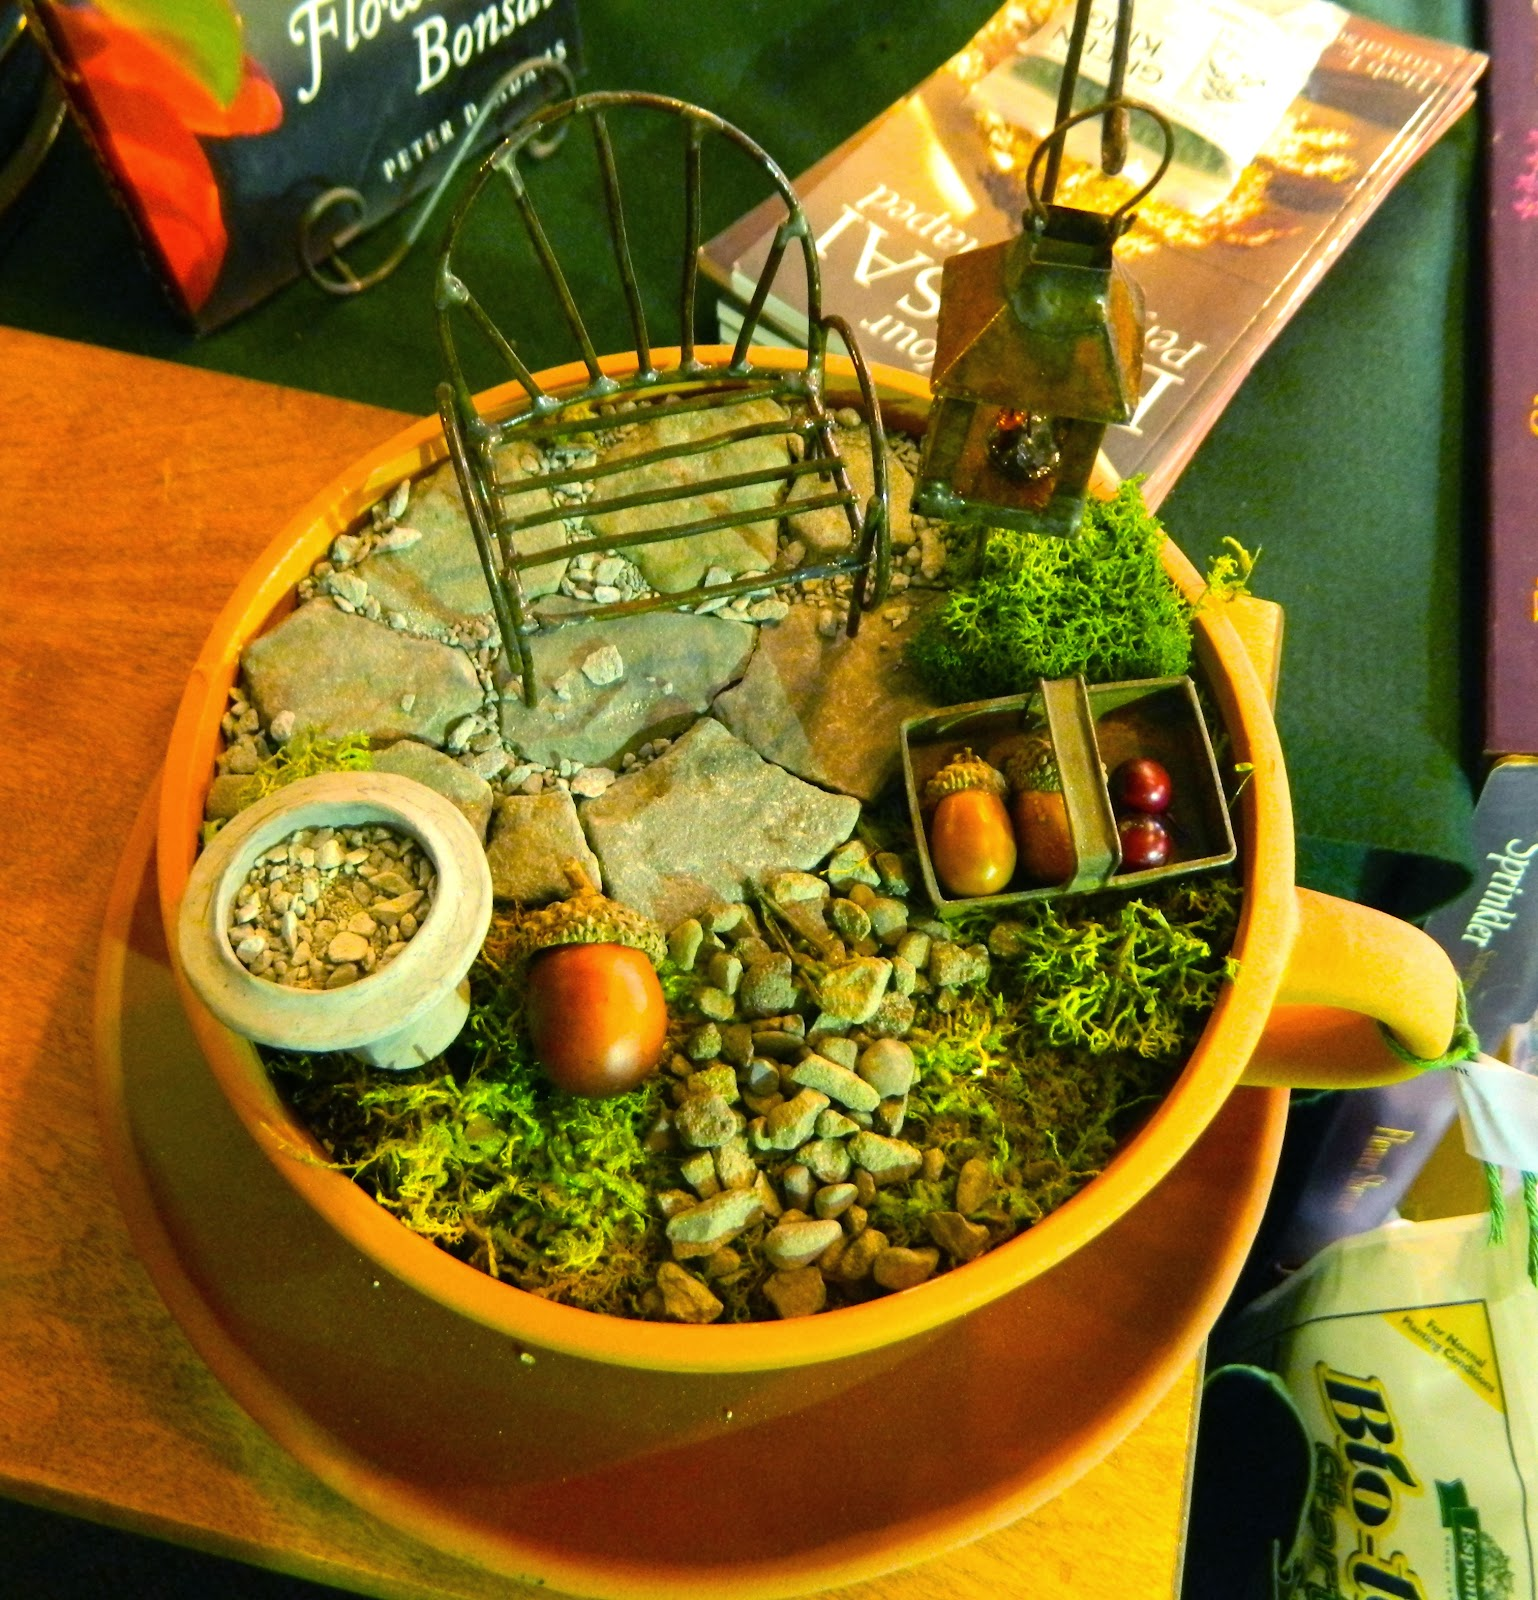 Every sort of accessory was displayed on a large table in the garden shop   arbors  garden chairs  planters  bird houses  garden tools. Pam s English Cottage Garden  Miniature Gardening  Part 1